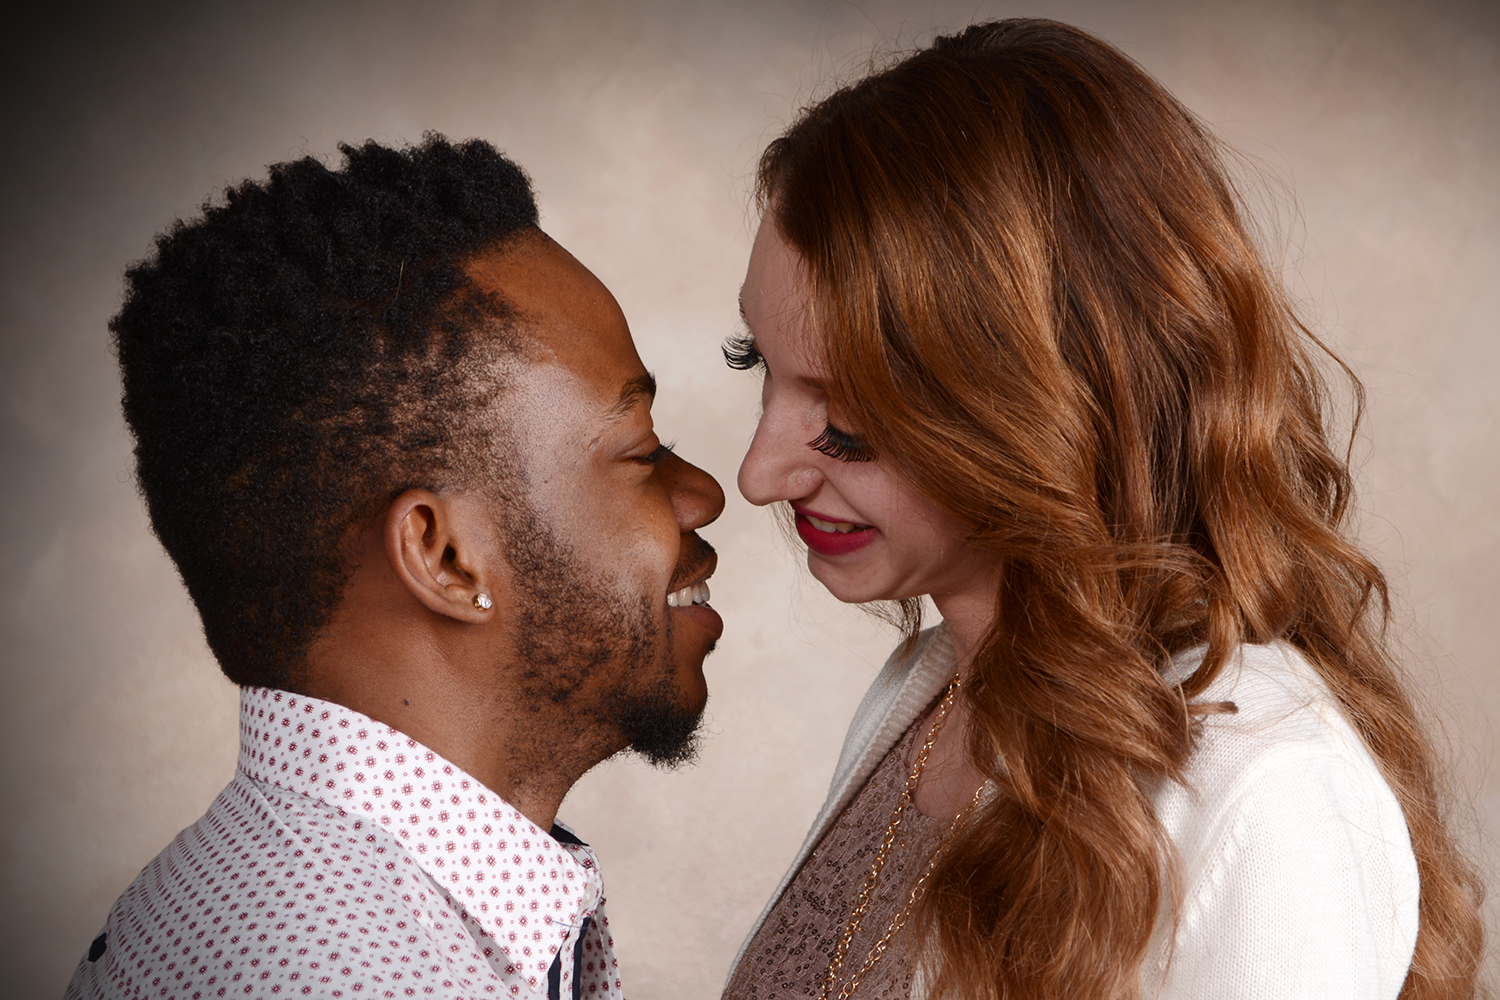 professional portrait photography taken of a couple smiling